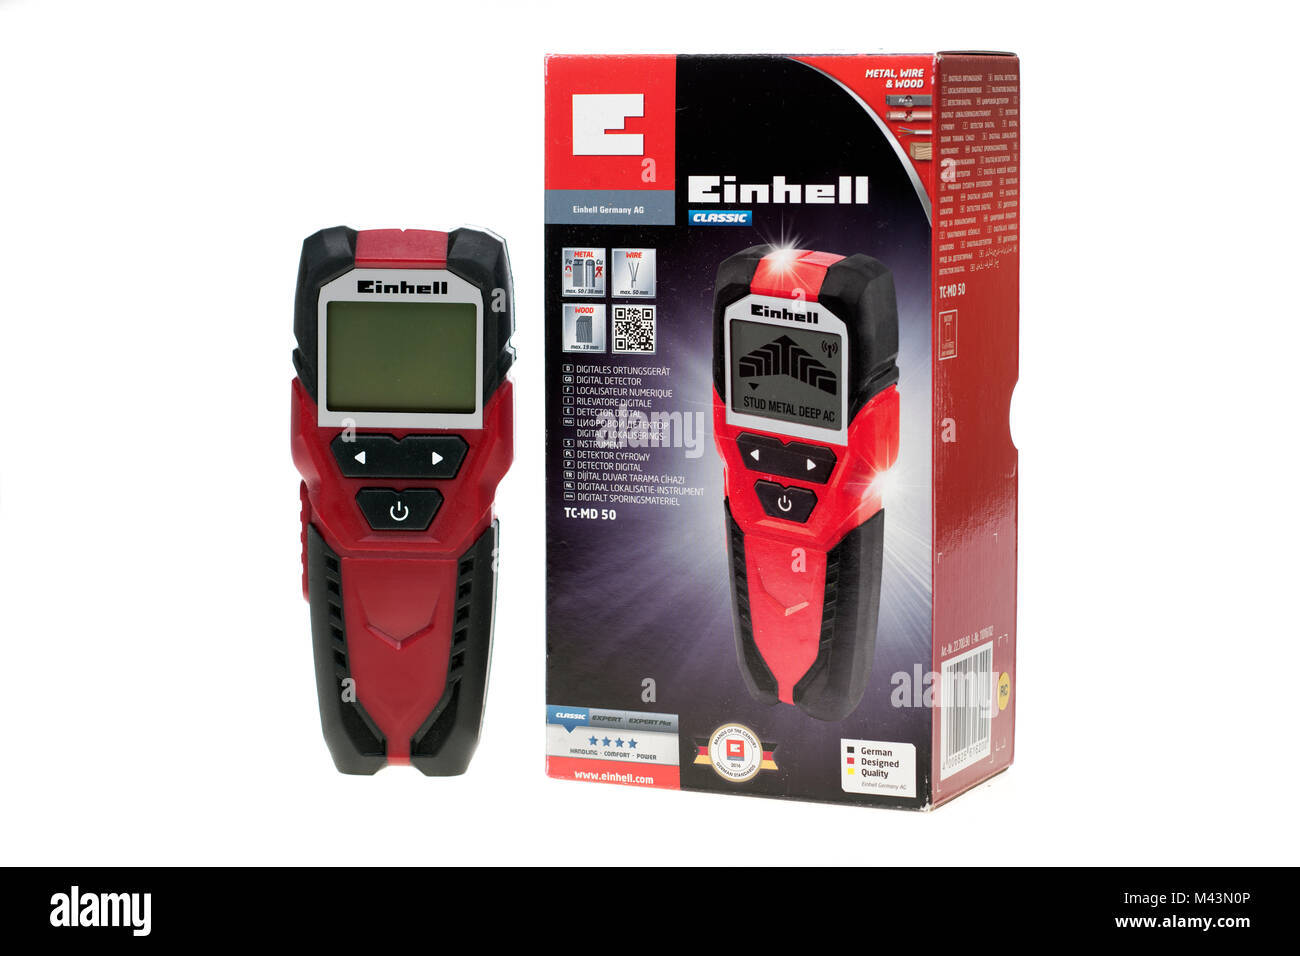 Einhell TC-MD 50 Digital Multi Detector for Walls - Stock Image